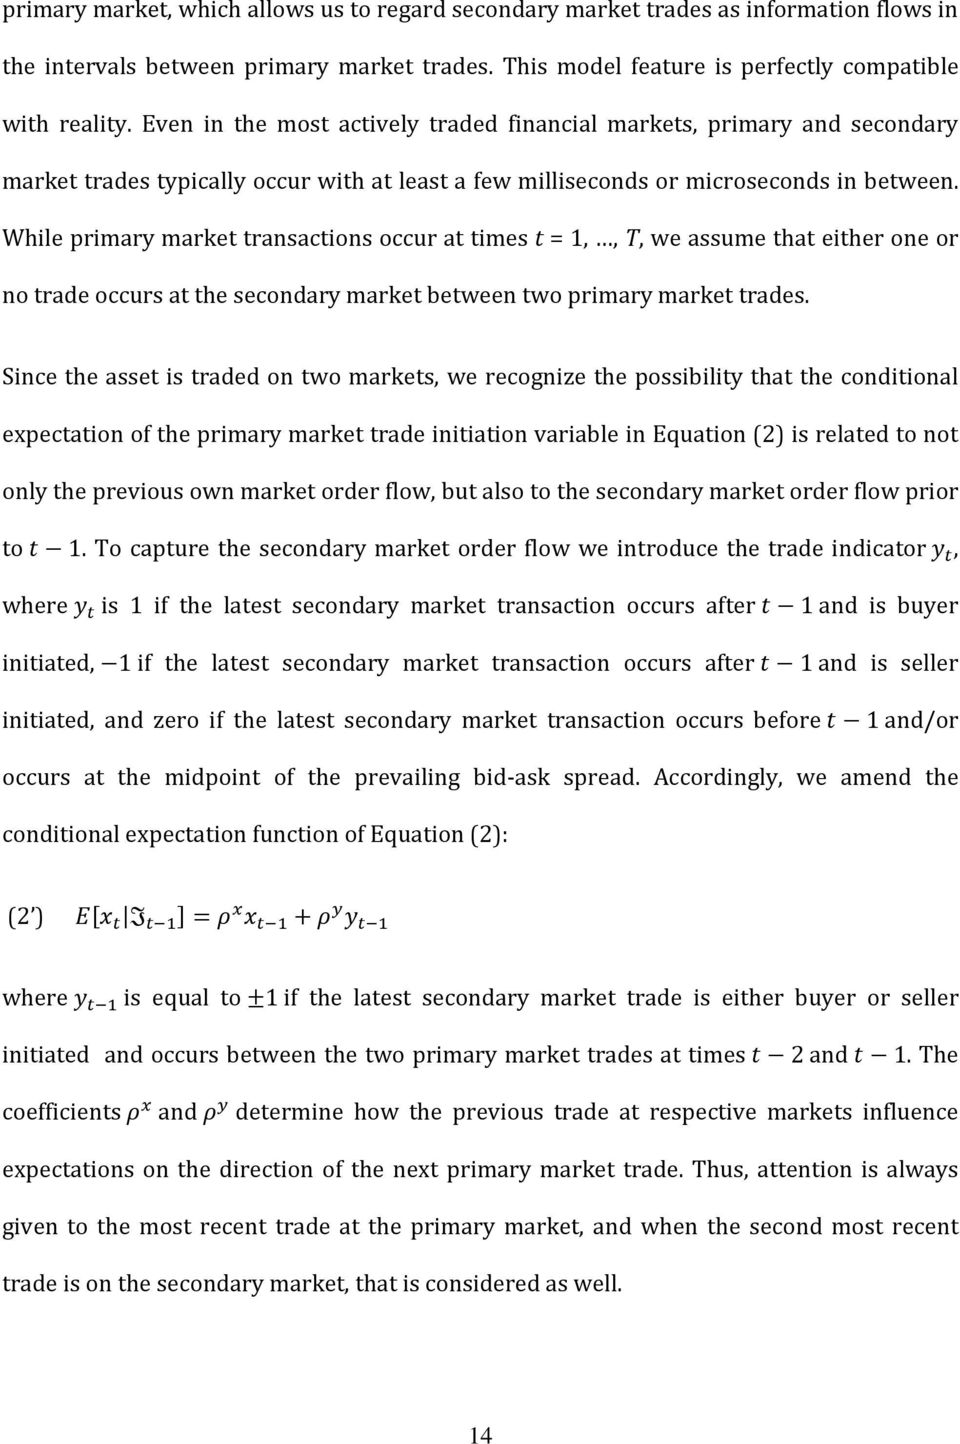 While primary market transactions occur at times t = 1,, T, we assume that either one or no trade occurs at the secondary market between two primary market trades.